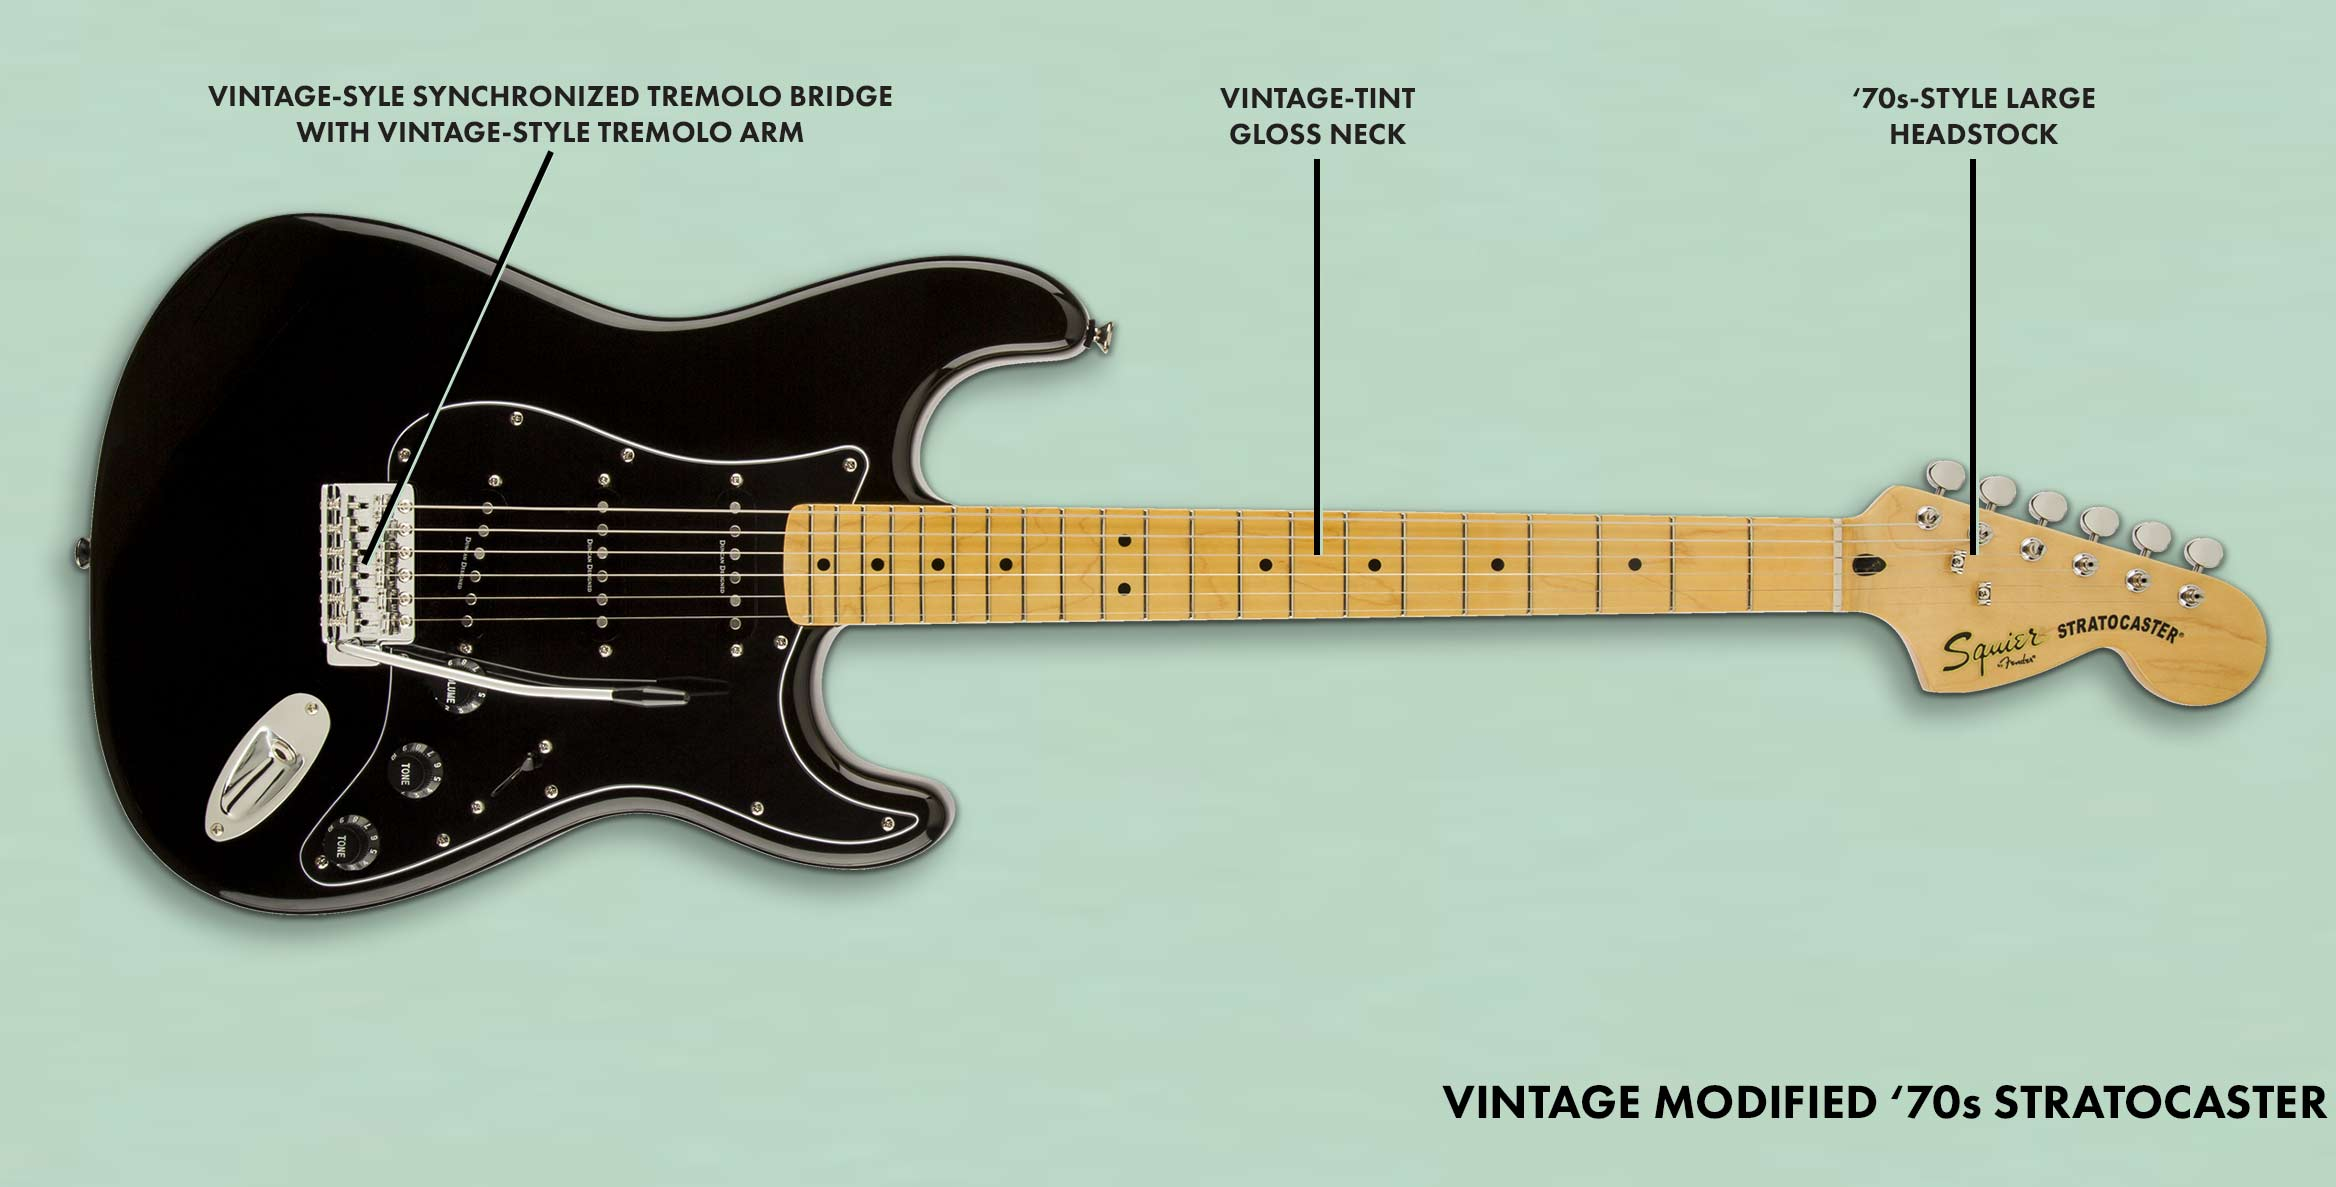 Vintage Modified '70s Stratocaster